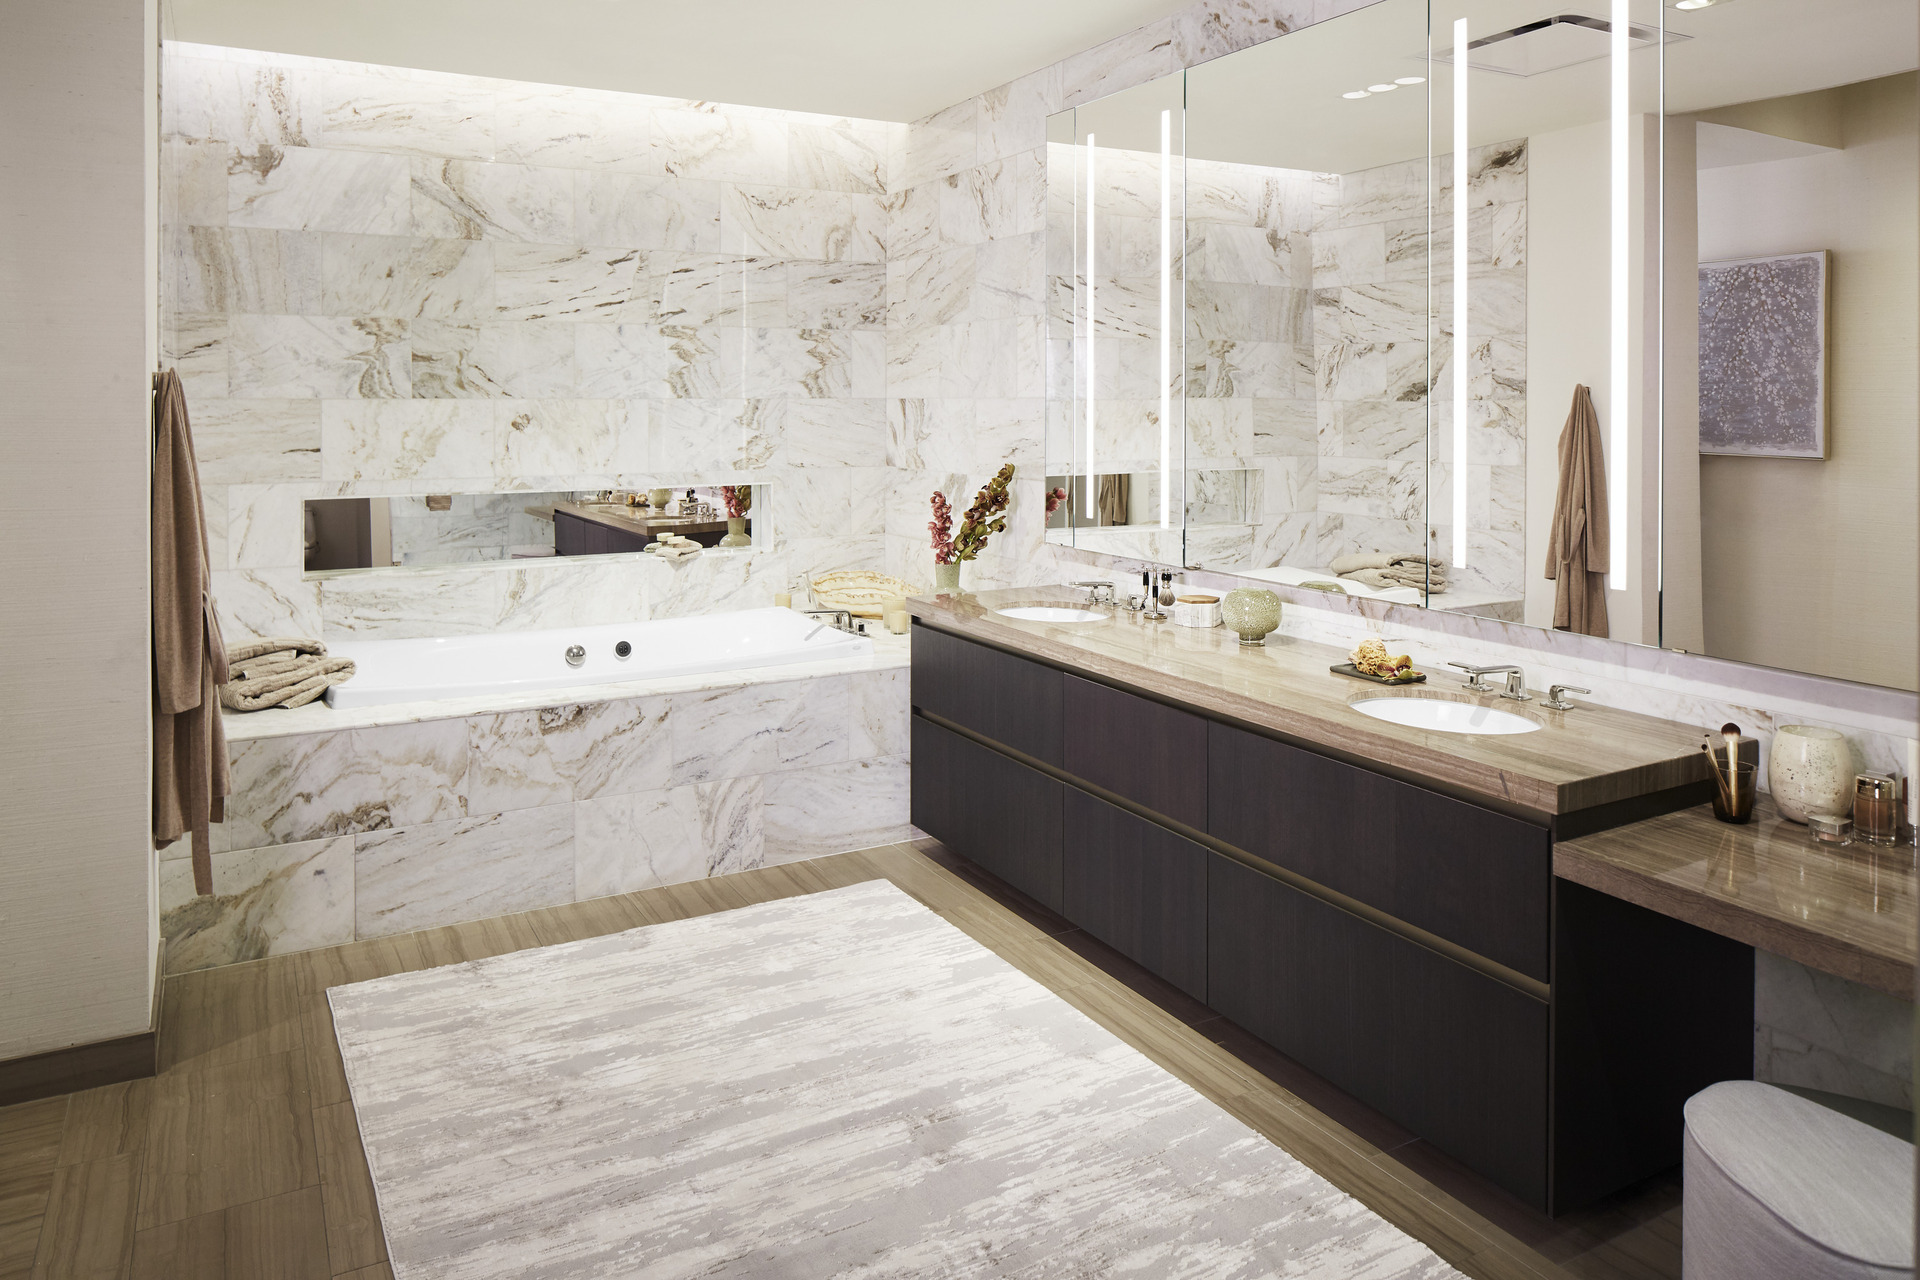 Residence packages are designed to emulate the Tower's exterior and feature the finest fixtures and finishes from KALLISTA and Kohler. The luxurious bathtub and double-bowl, stainless steel sinks designed by Kohler and faucets and accessories designed by KALLISTA leave both the bathroom and kitchen feeling refined and polished.